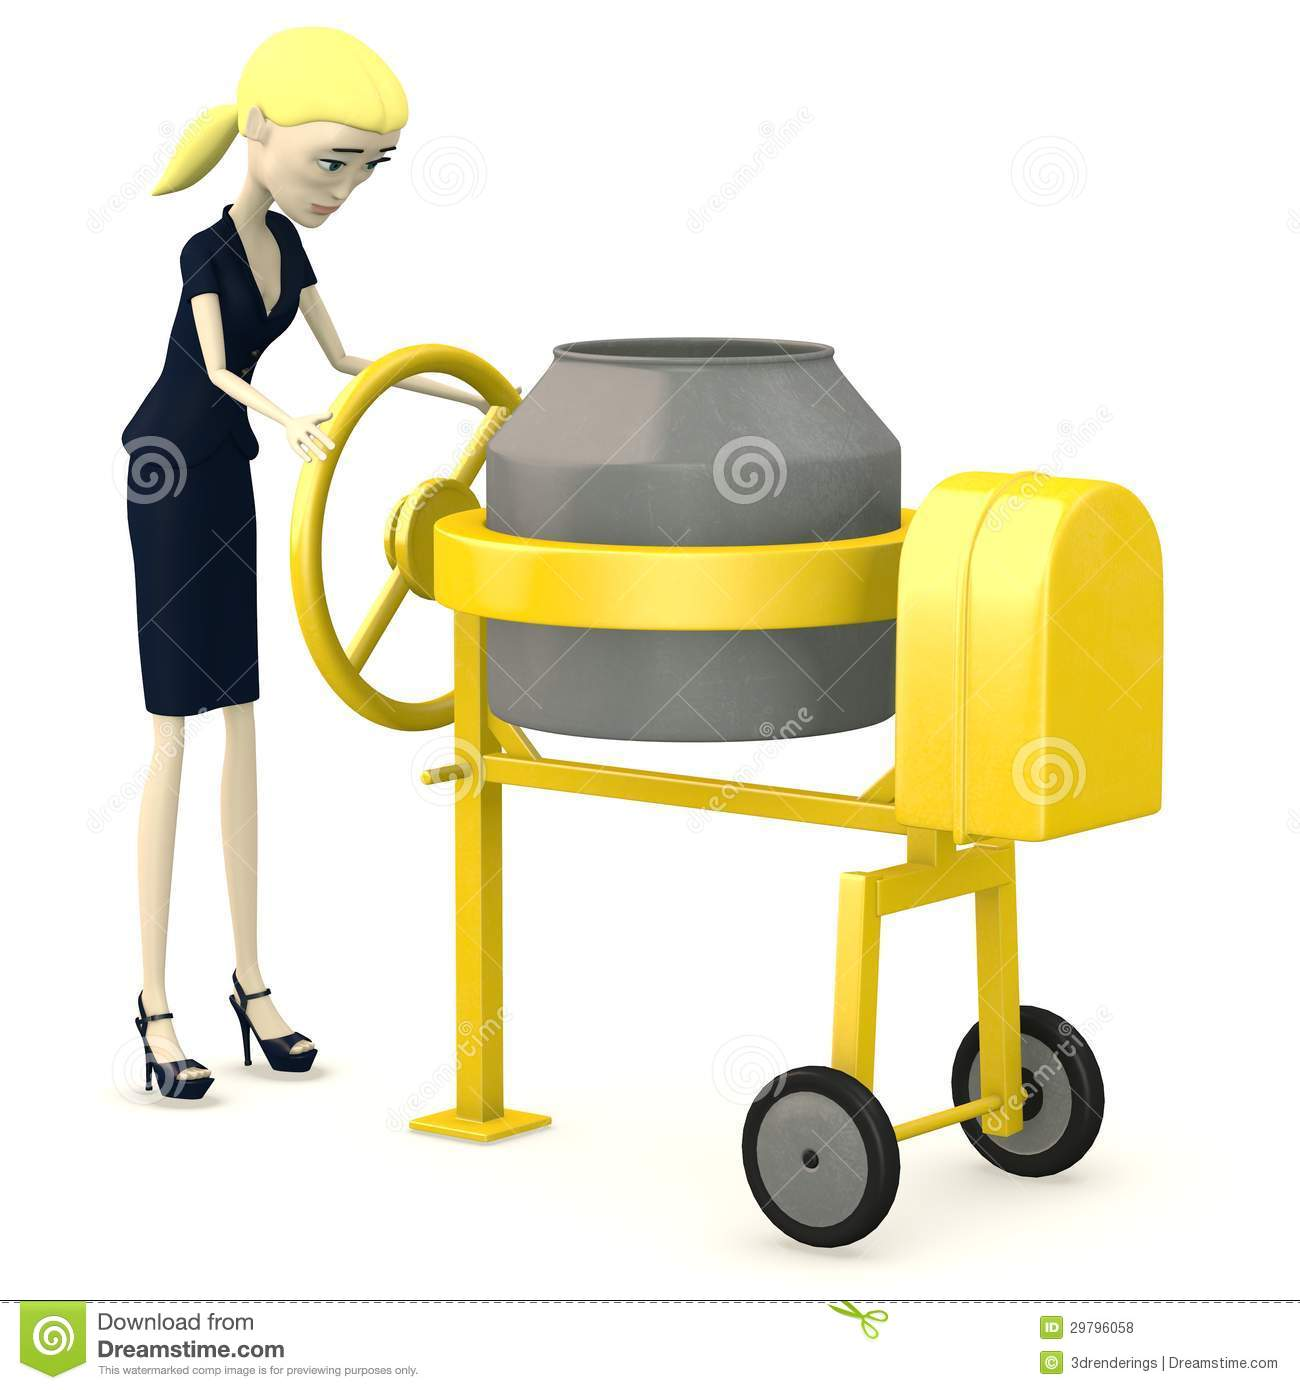 Concrete Mixing Animation : Cartoon businesswoman with cement mixer royalty free stock